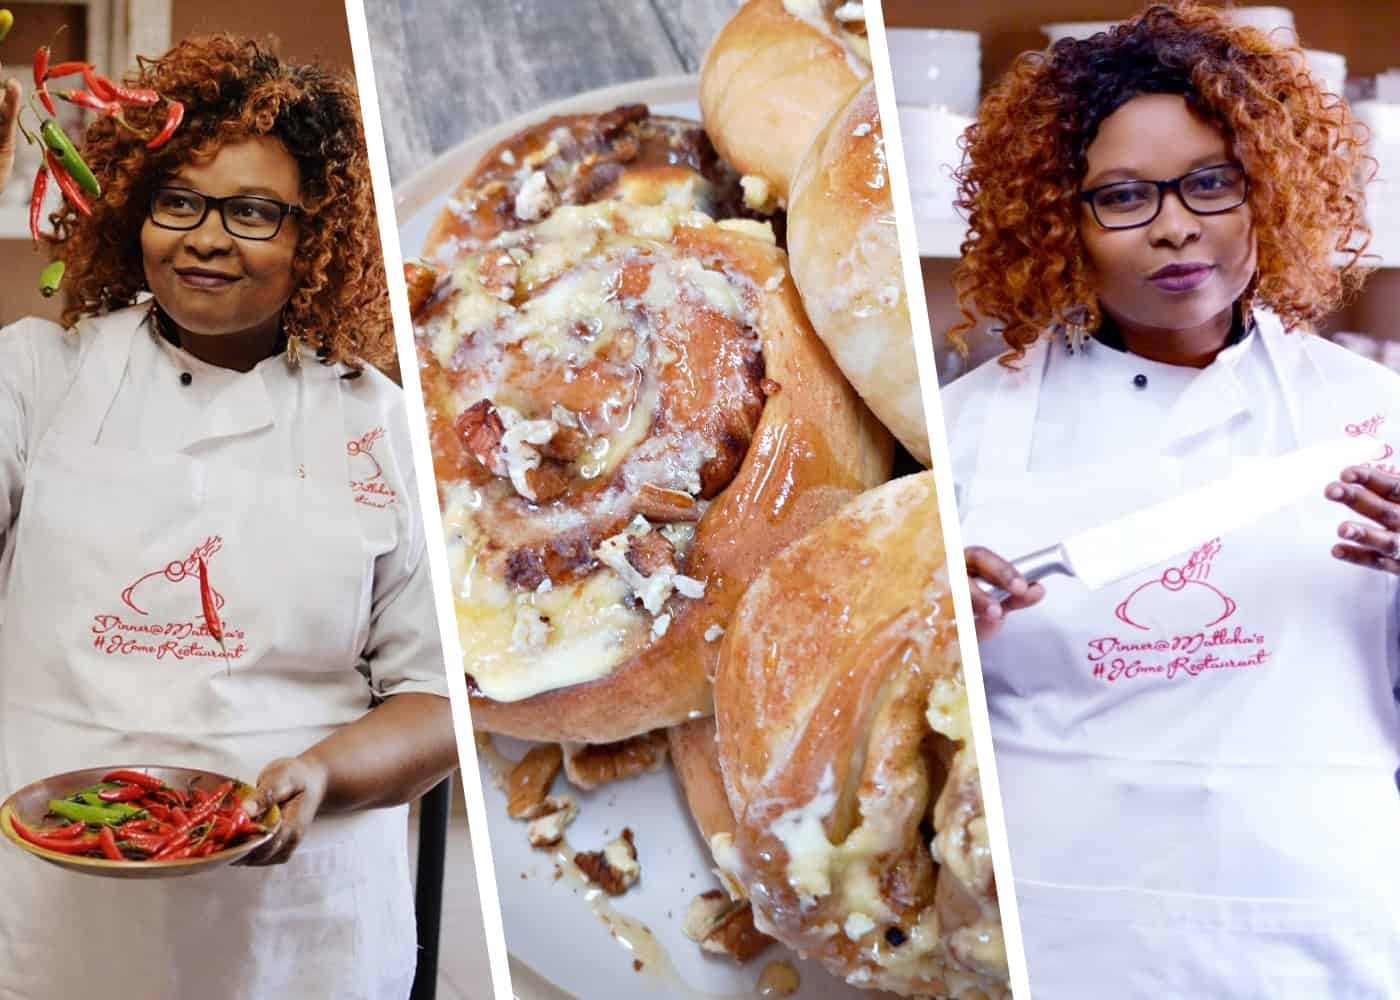 Chef Liziwe Matloha fell in love with cooking at a young age.